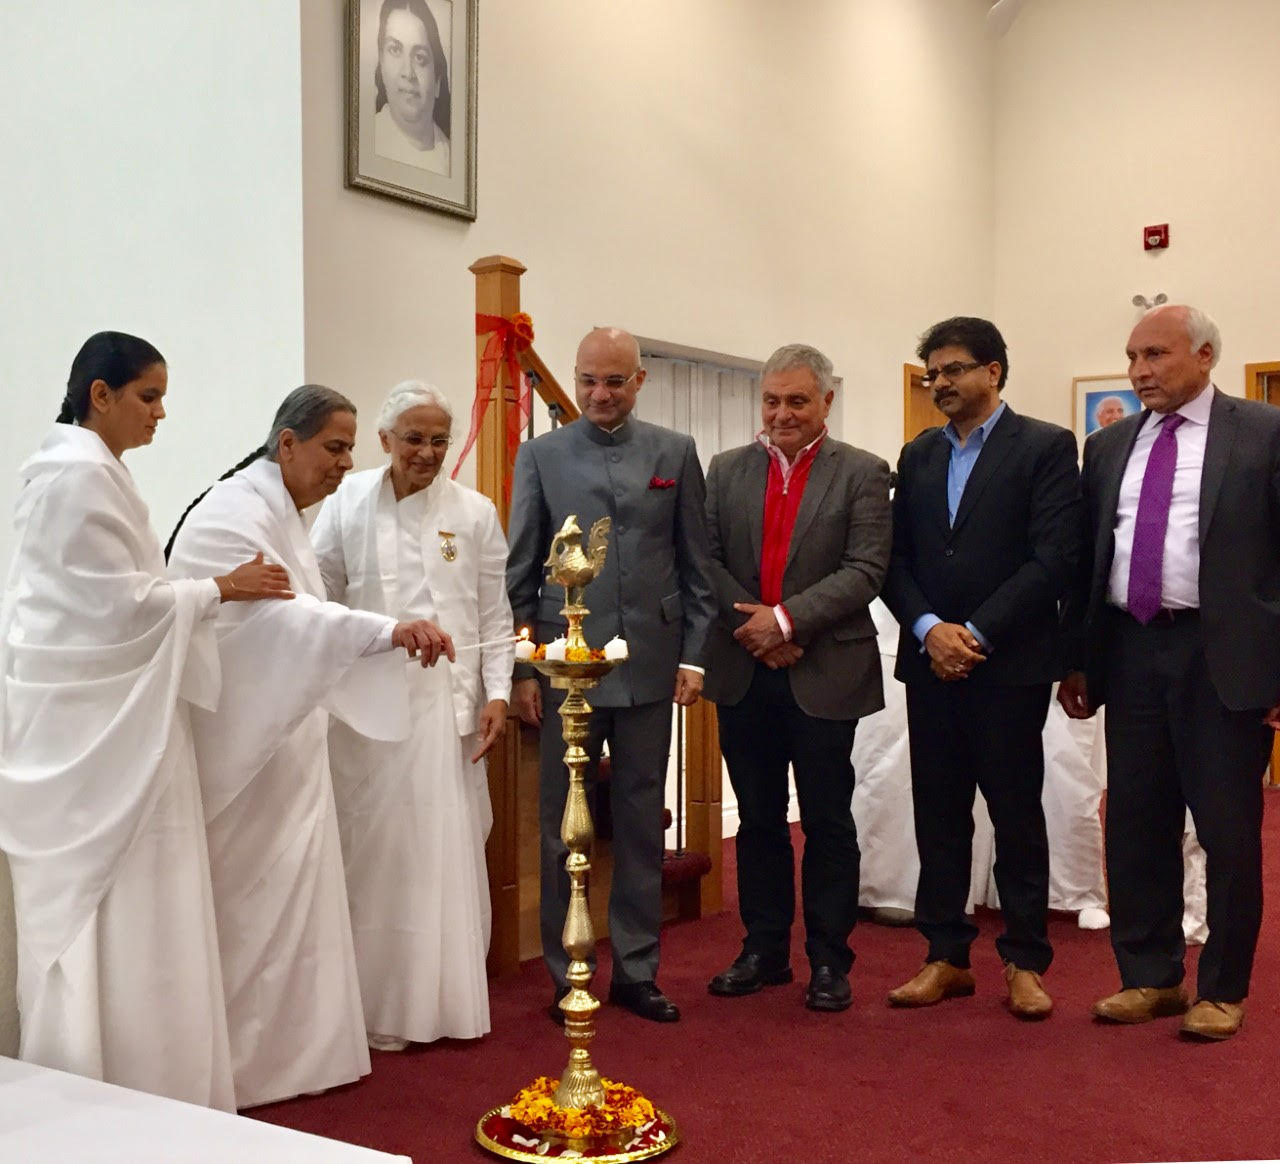 Consul General of India, Toronto at the Inauguration of BK Center